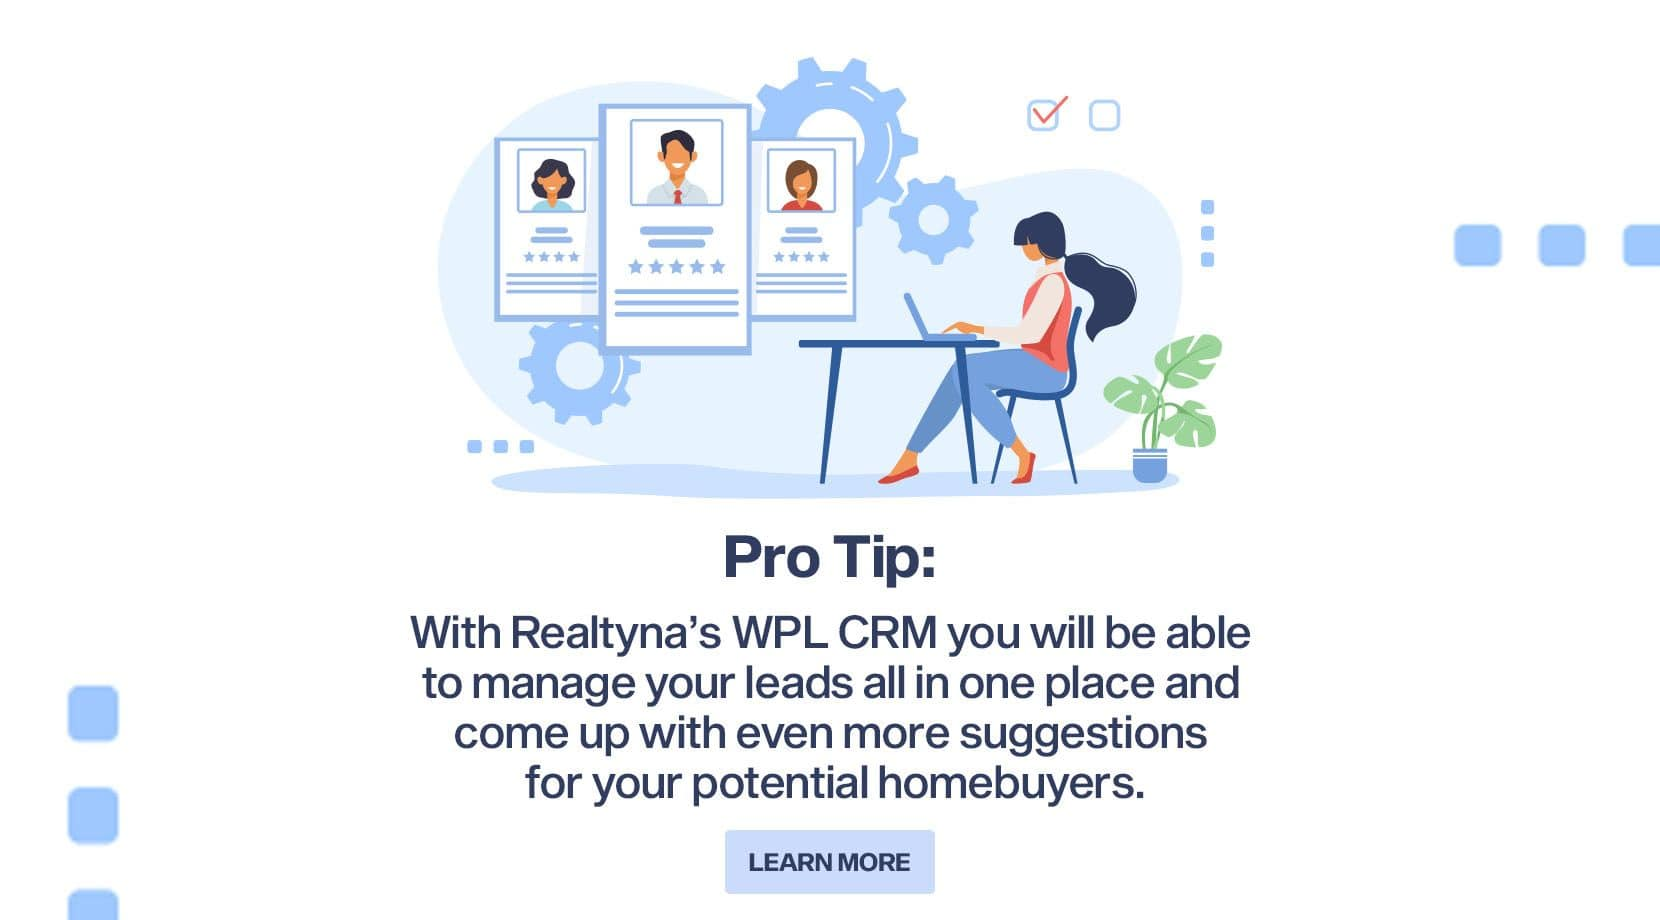 Realtyna's WPL CRM